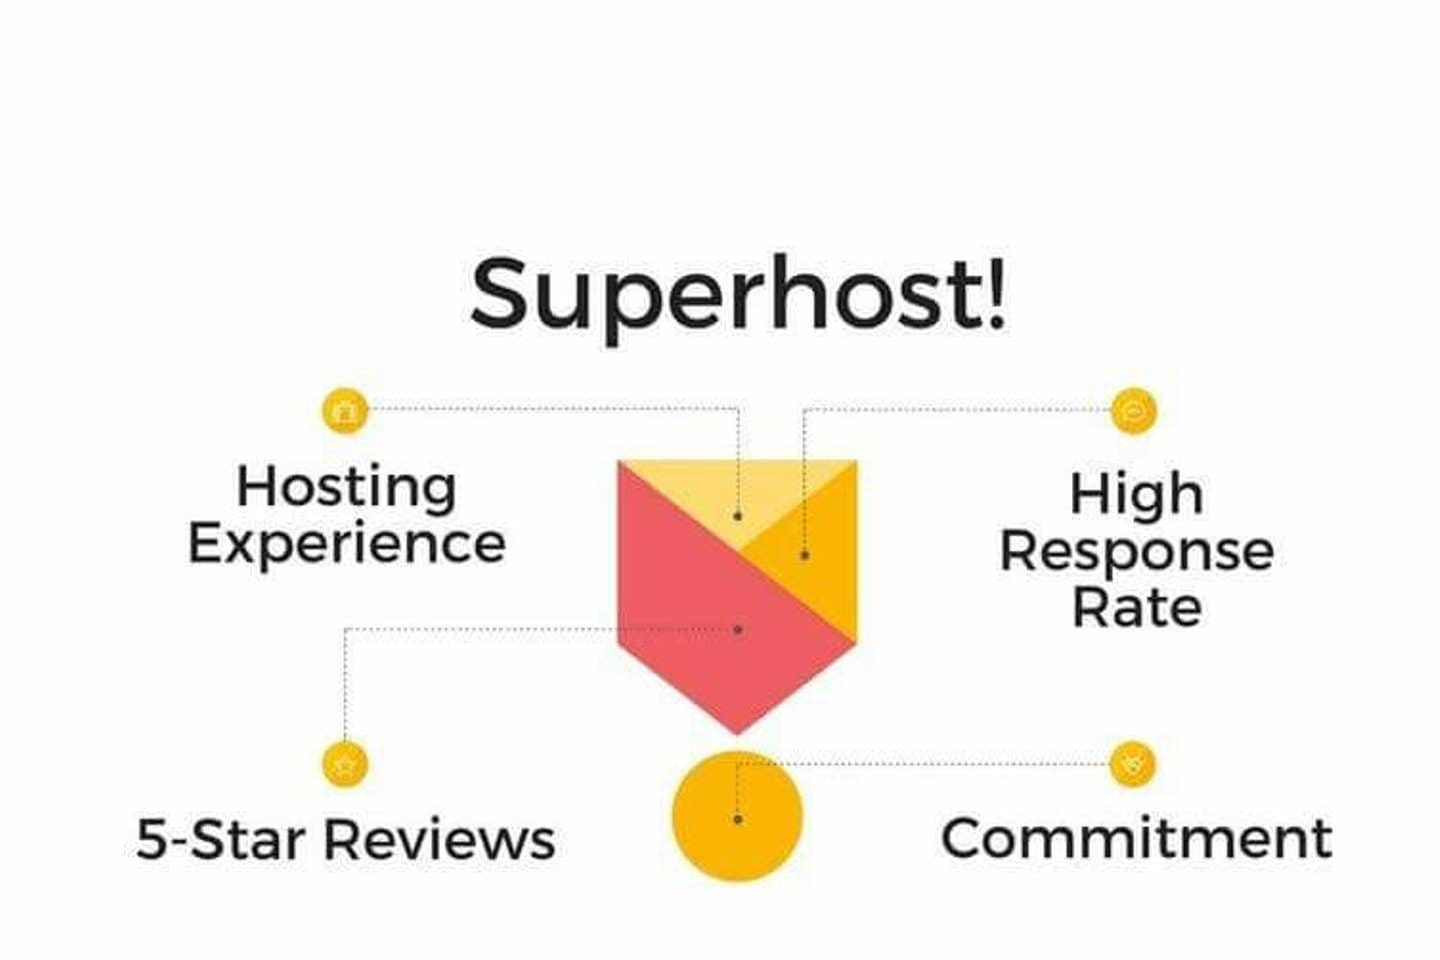 We have been Superhost for 3 years now!!